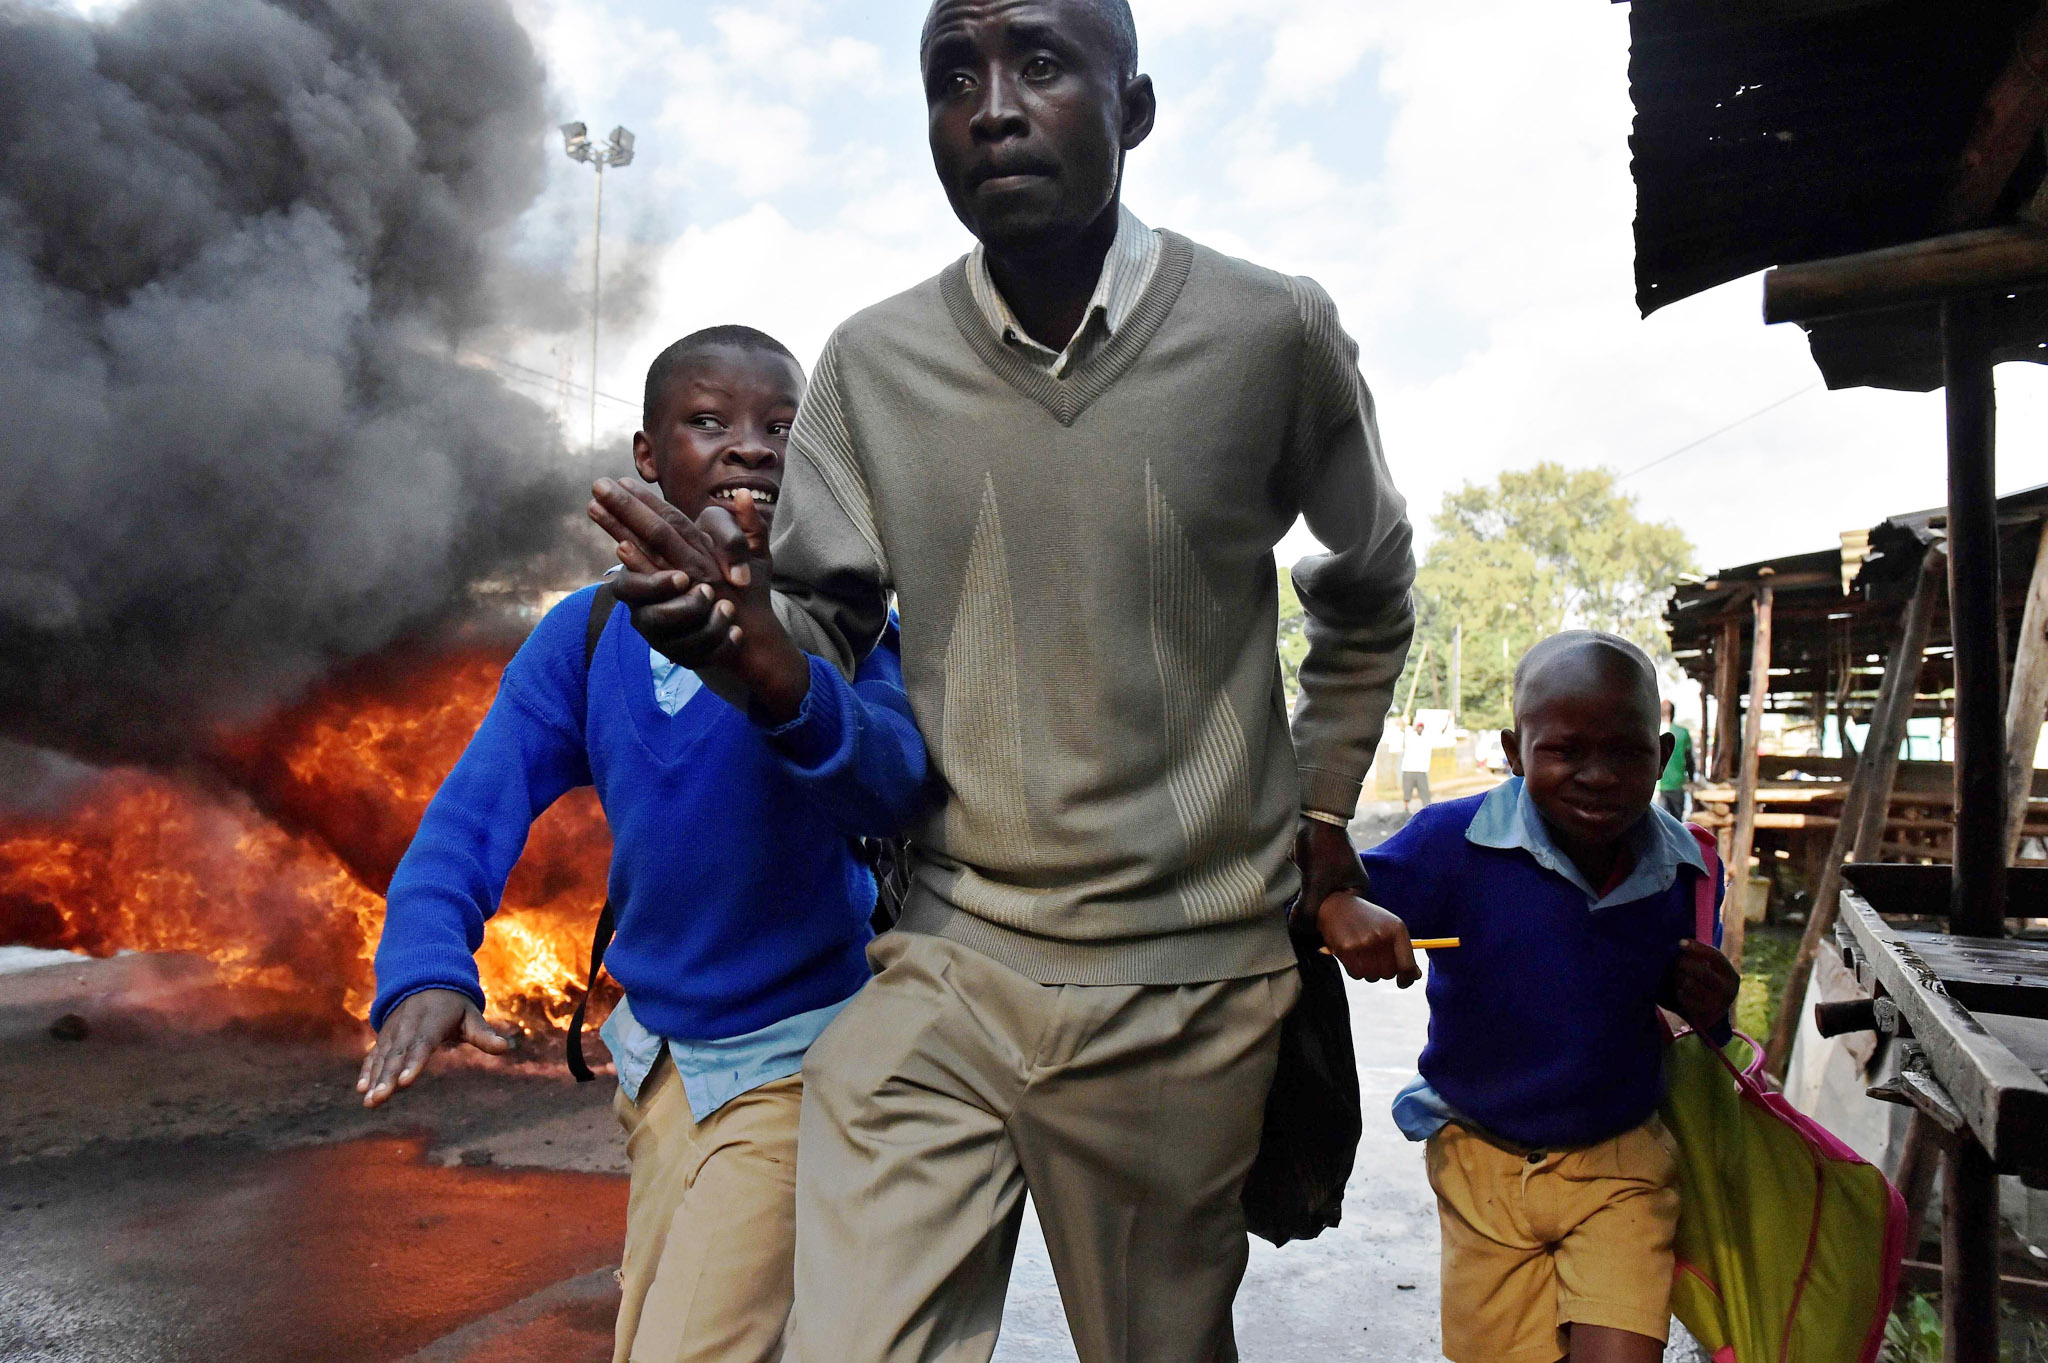 TOPSHOT - A man leads school children away from teargas and a burning barricade in Kibera slum, Nairobi on May 23, 2016 during a demonstration of opposition supporters demanding a change of leadership at the electoral commission ahead of a vote due next year.  Local media reported at least one killed in Kisumu in the west of the country, while police in Nairobi and the second city of Mombasa fought running battles with small groups of protesters. There was no immediate police confirmation of the reported death. Police had banned the planned demonstrations and scores of officers in riot gear guarded the building that houses the election commission headquarters in the centre of the capital.  / AFP PHOTO / CARL DE SOUZACARL DE SOUZA/AFP/Getty Images